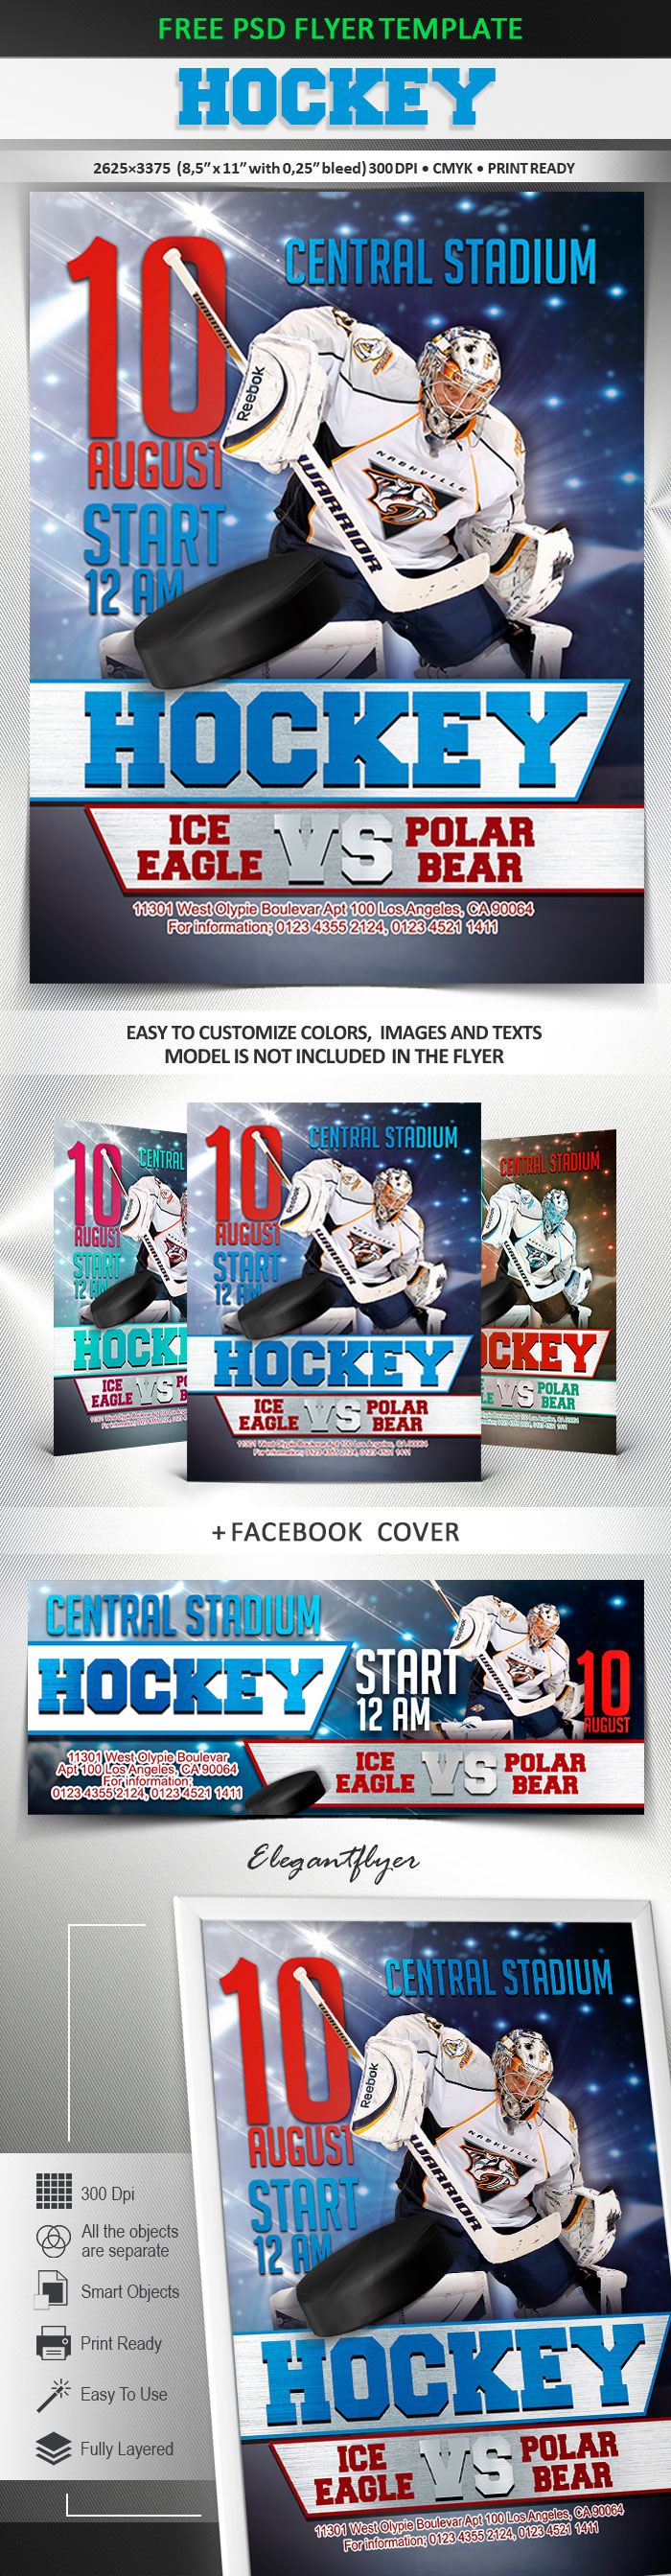 Hockey – Free Flyer PSD Template